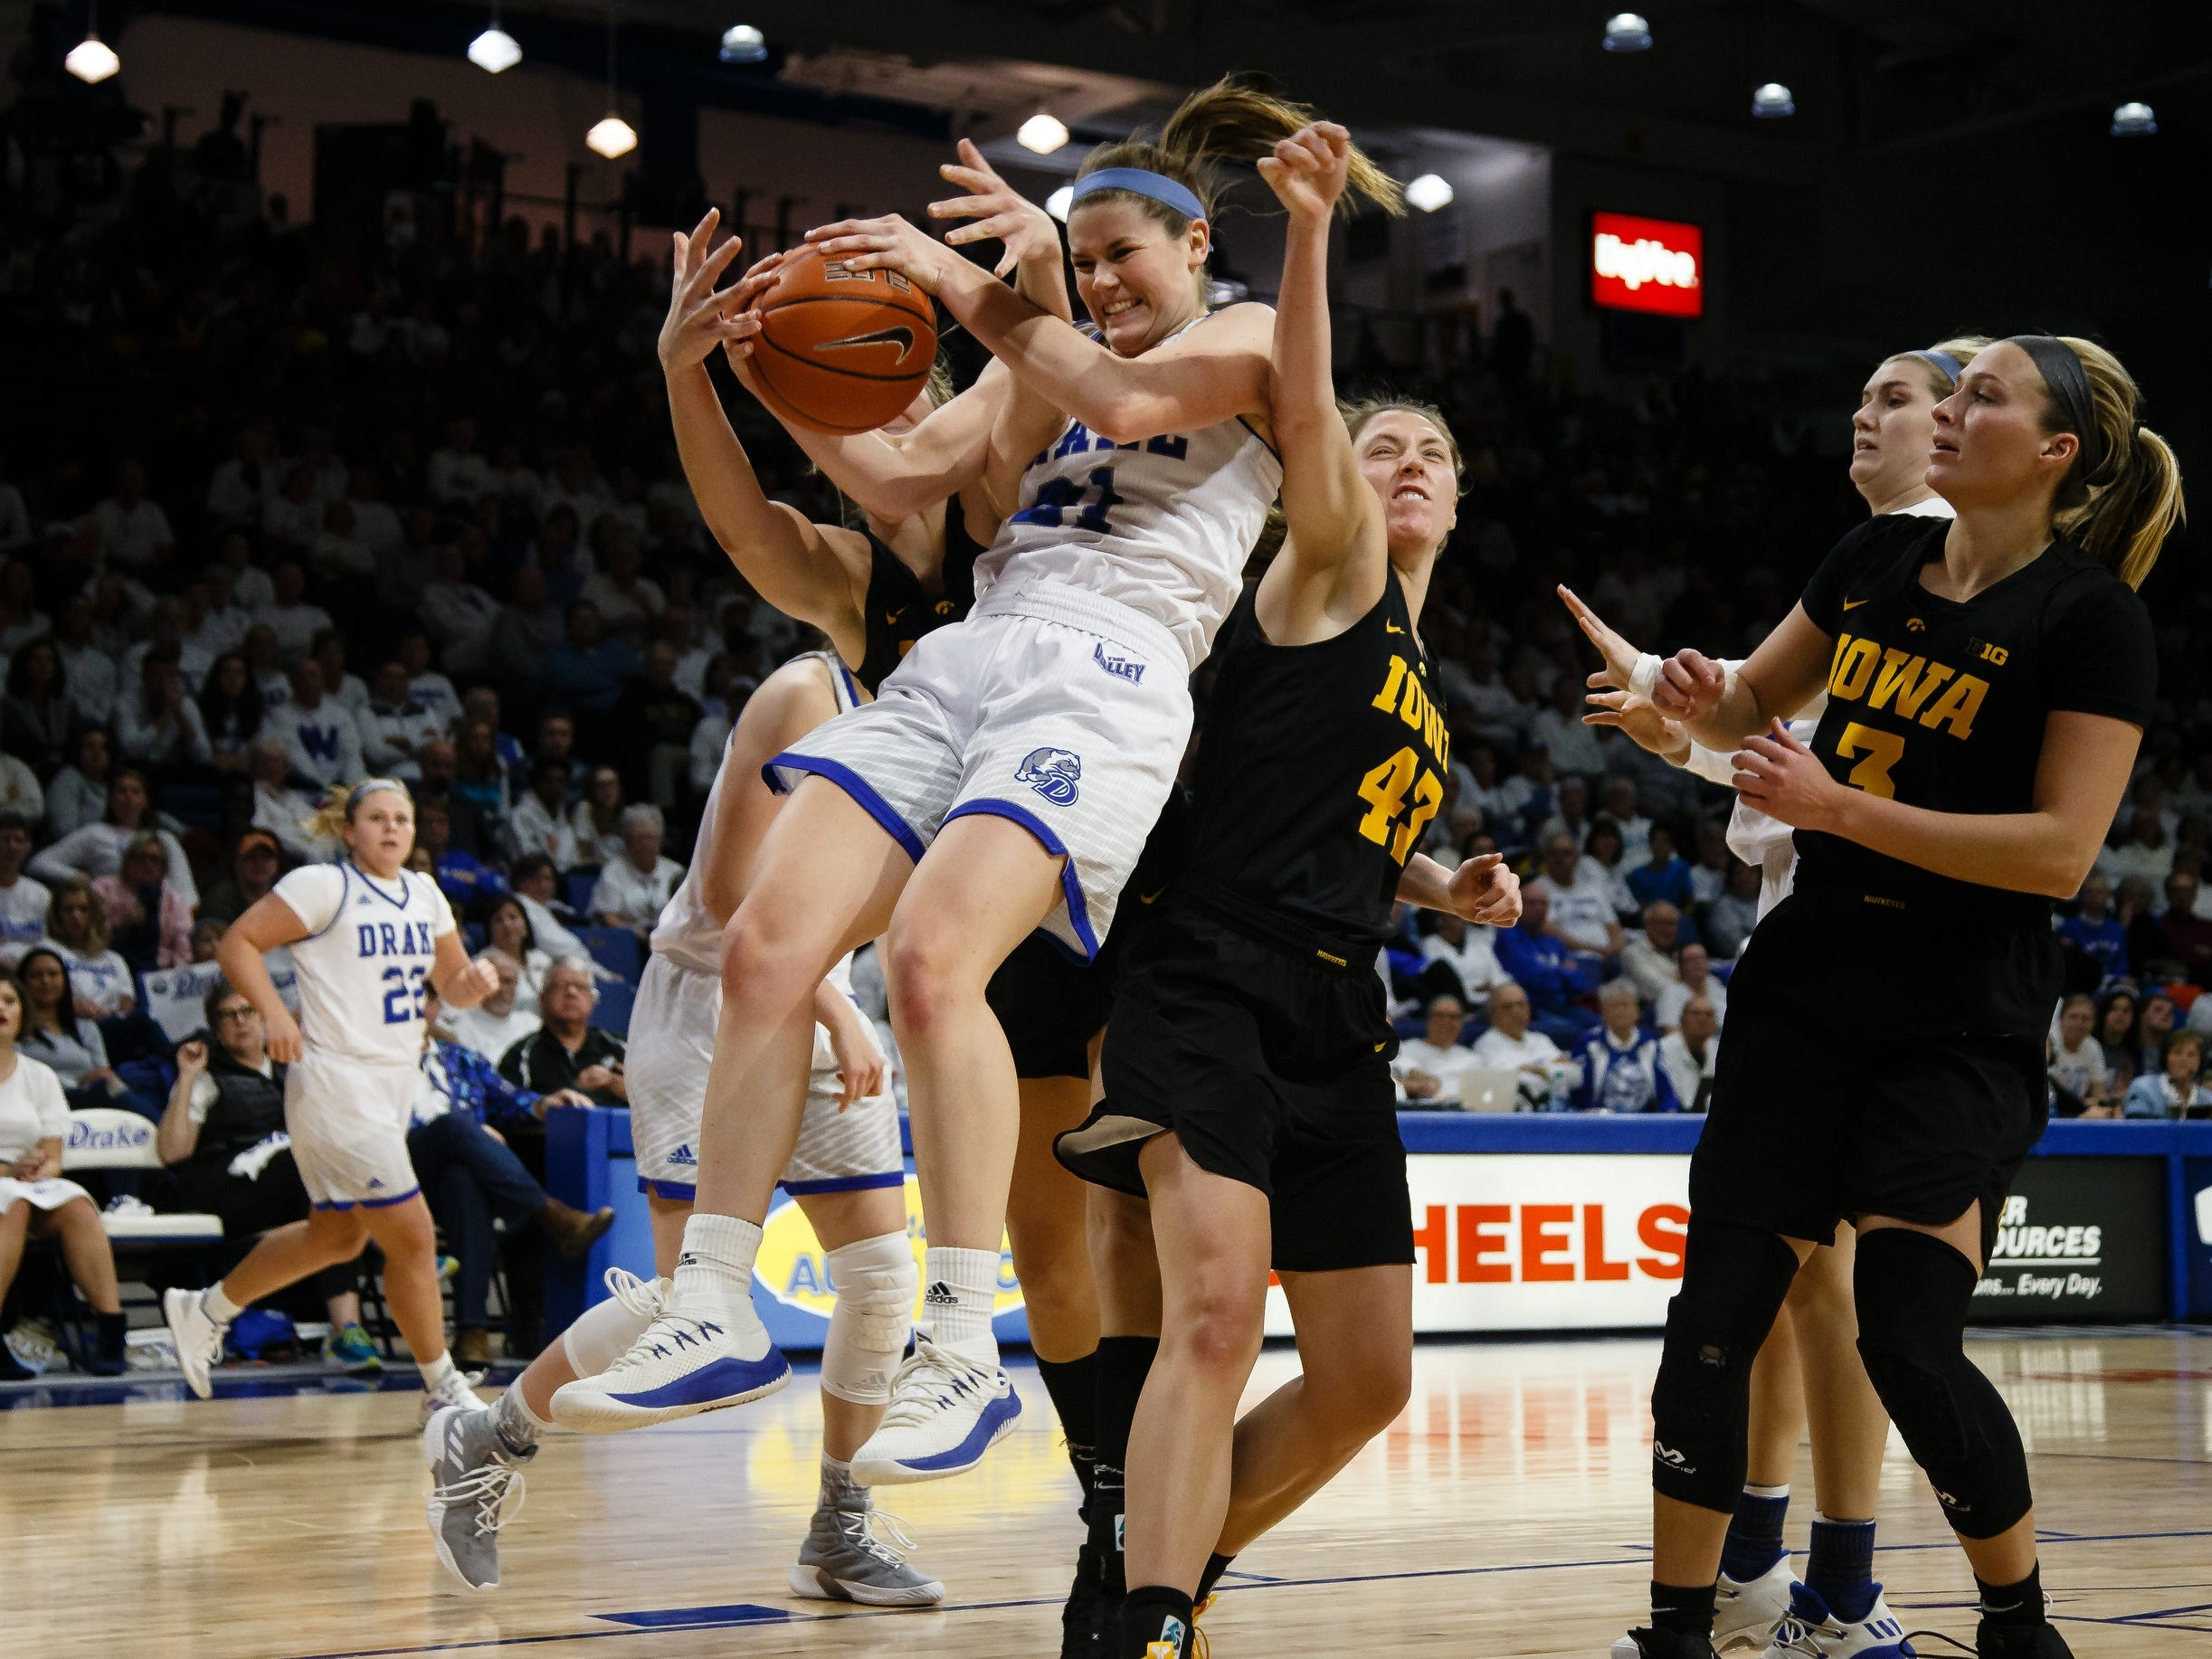 Drake's SammieÊBachrodt (21) comes down with a rebound during their basketball game on Friday, Dec. 21, 2018, in Des Moines. Iowa would go on to defeat Drake 91-82.